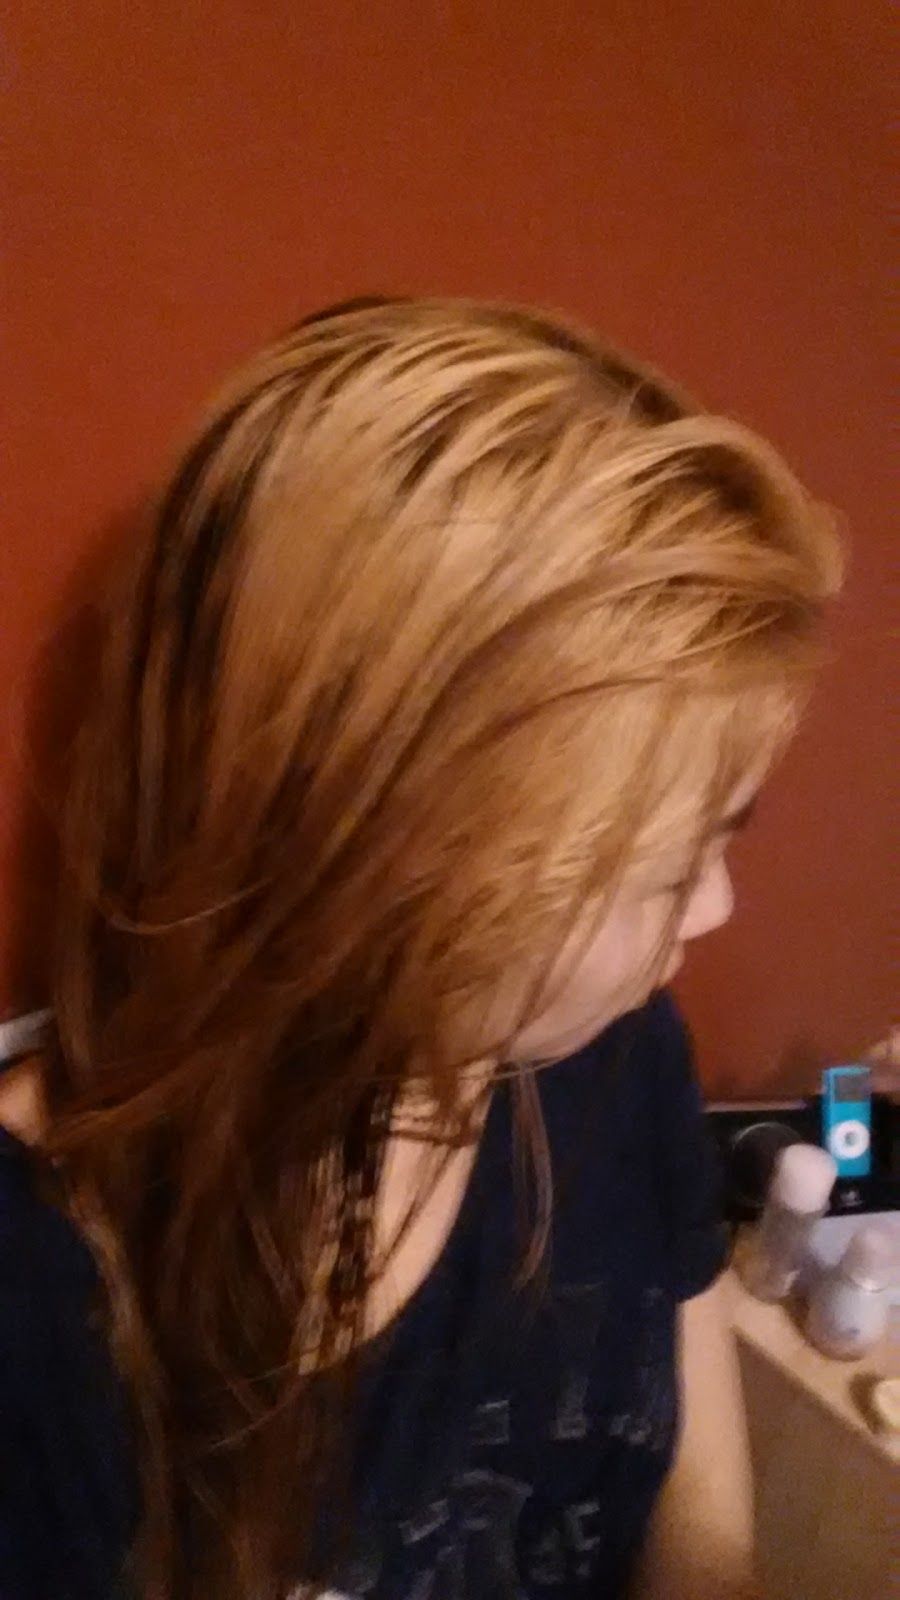 So I Let My Hair Rest For A Day And Decided To Bleach It Again The Next Shocking Enough After Bleached Came Out Softer Than